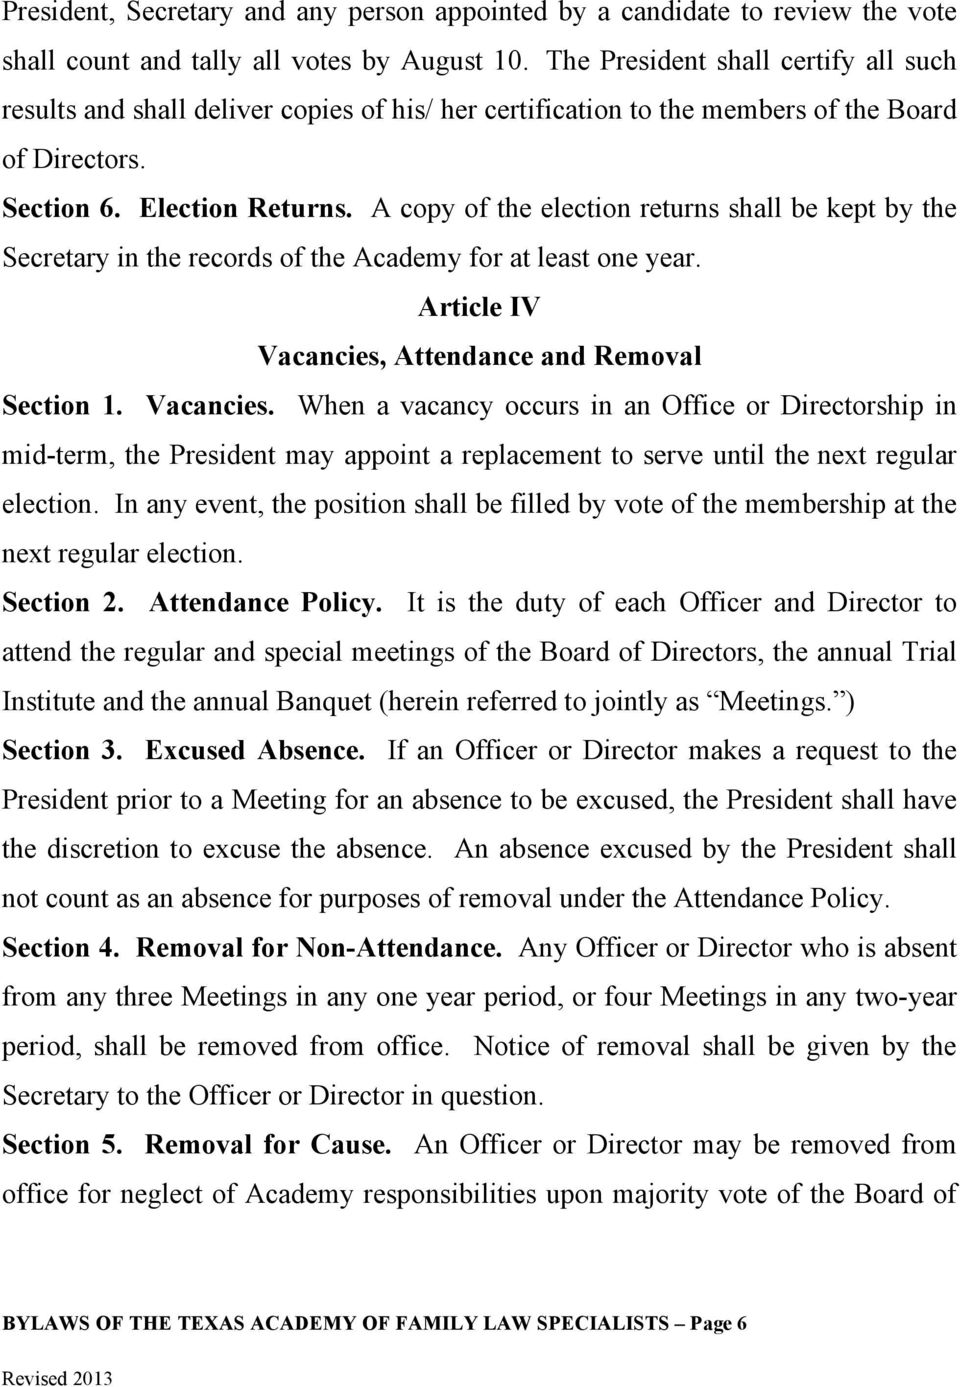 A copy of the election returns shall be kept by the Secretary in the records of the Academy for at least one year. Article IV Vacancies,